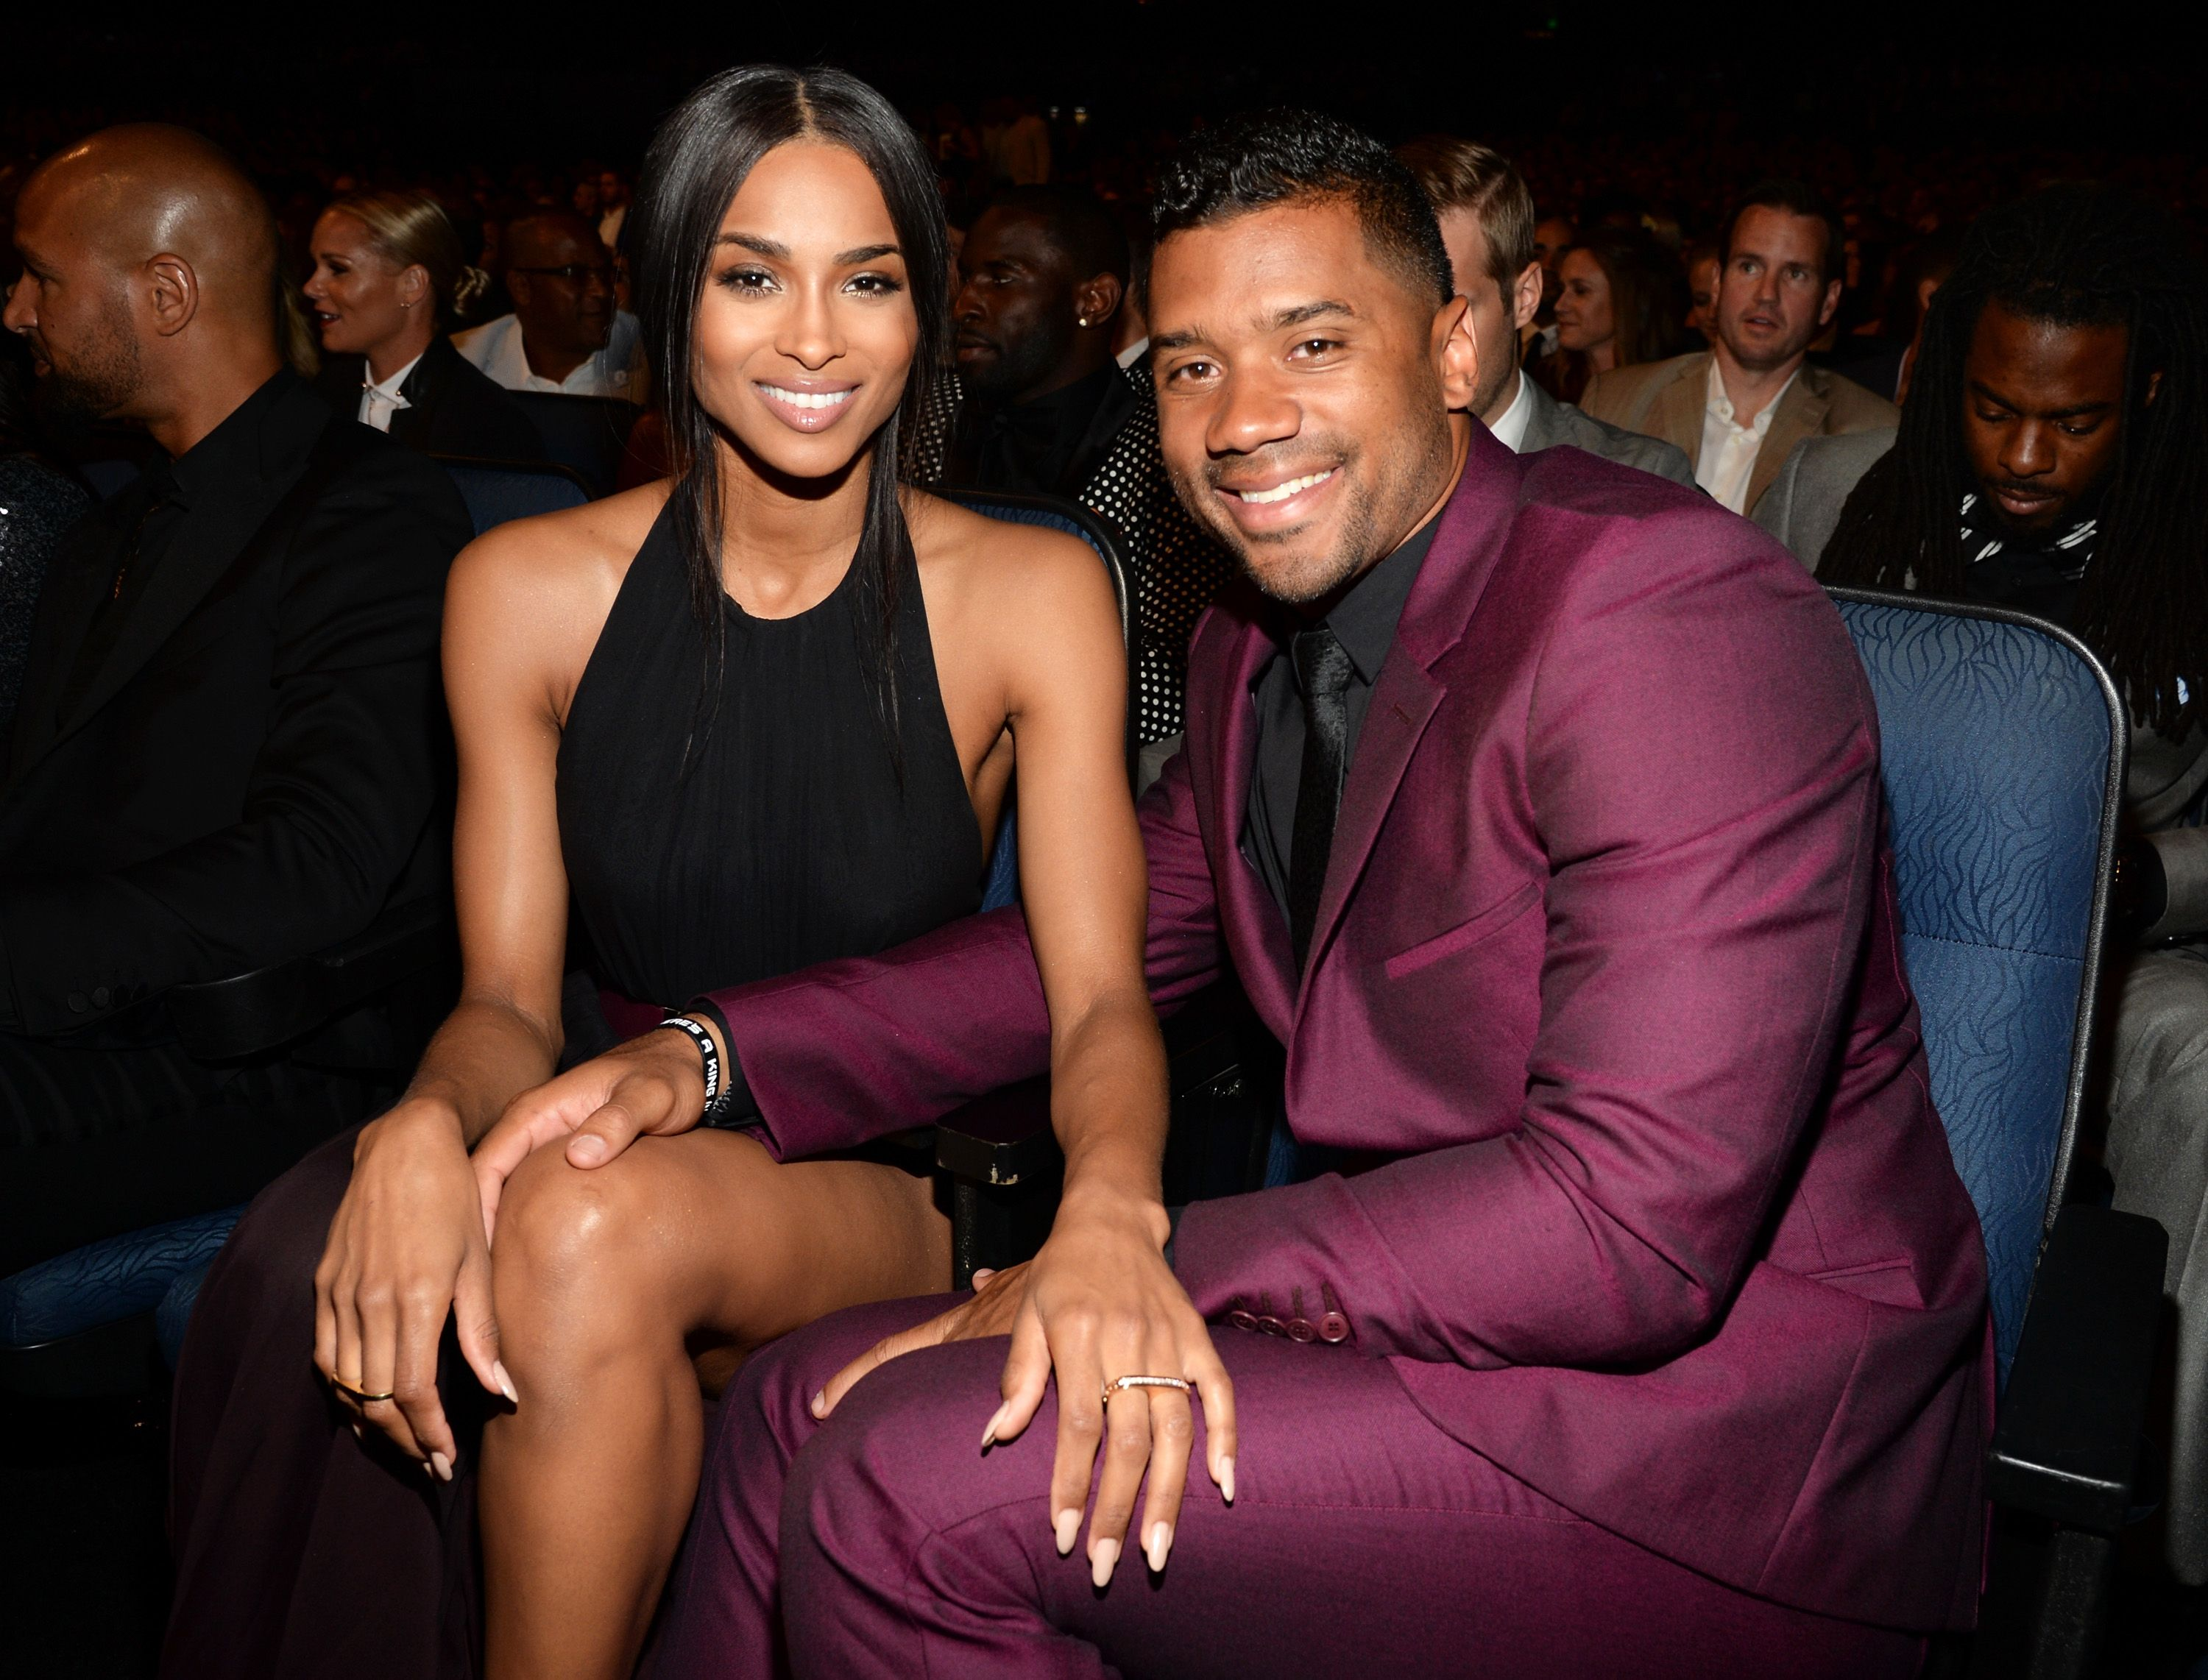 Quarterback Russell Wilson and singer Ciara attend the 2015 ESPYS at Microsoft Theater in LA, California on 15 July, 2015. | Photo: WireImage/Kevin Mazur